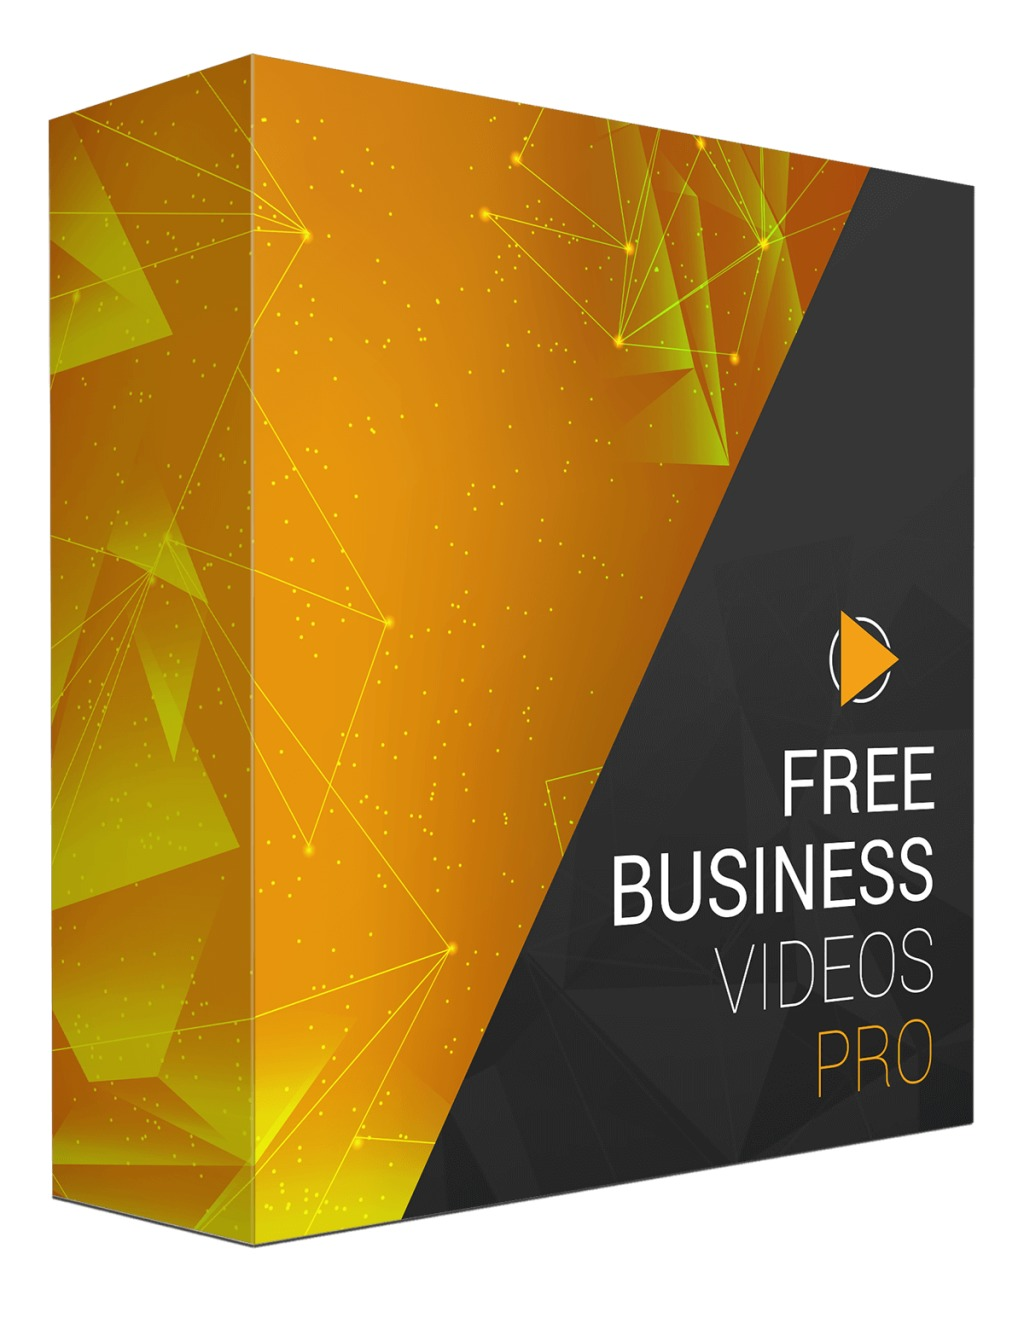 Free Business Videos PRO